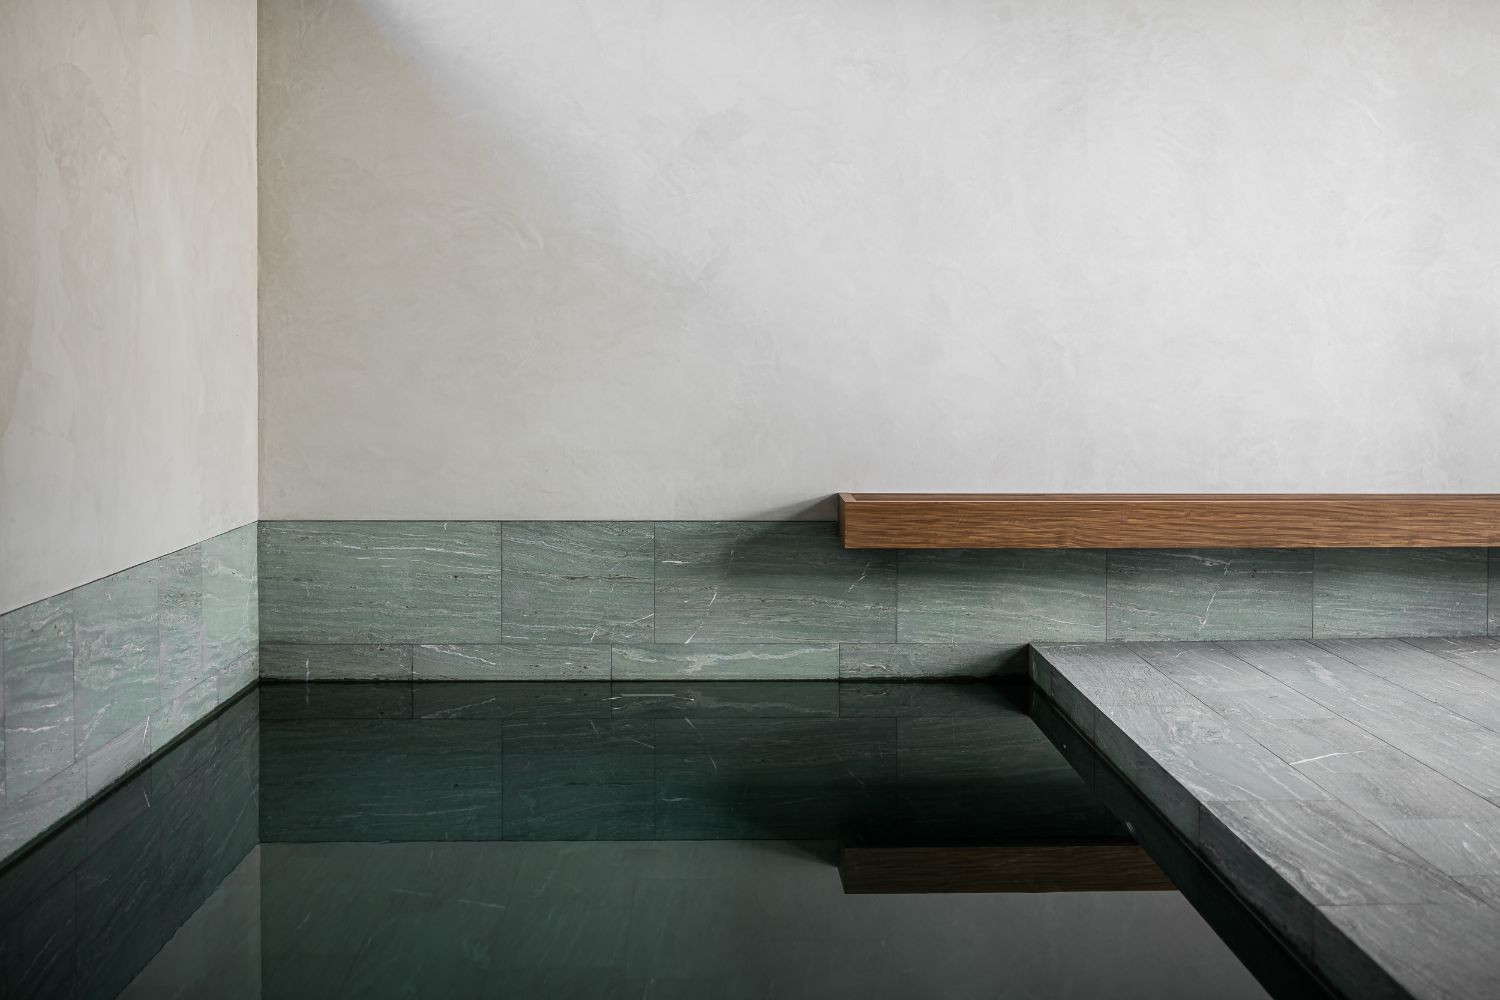 Rietveldprojects - House MP - Indoor swimminpool - Pic by Cafeïne 16